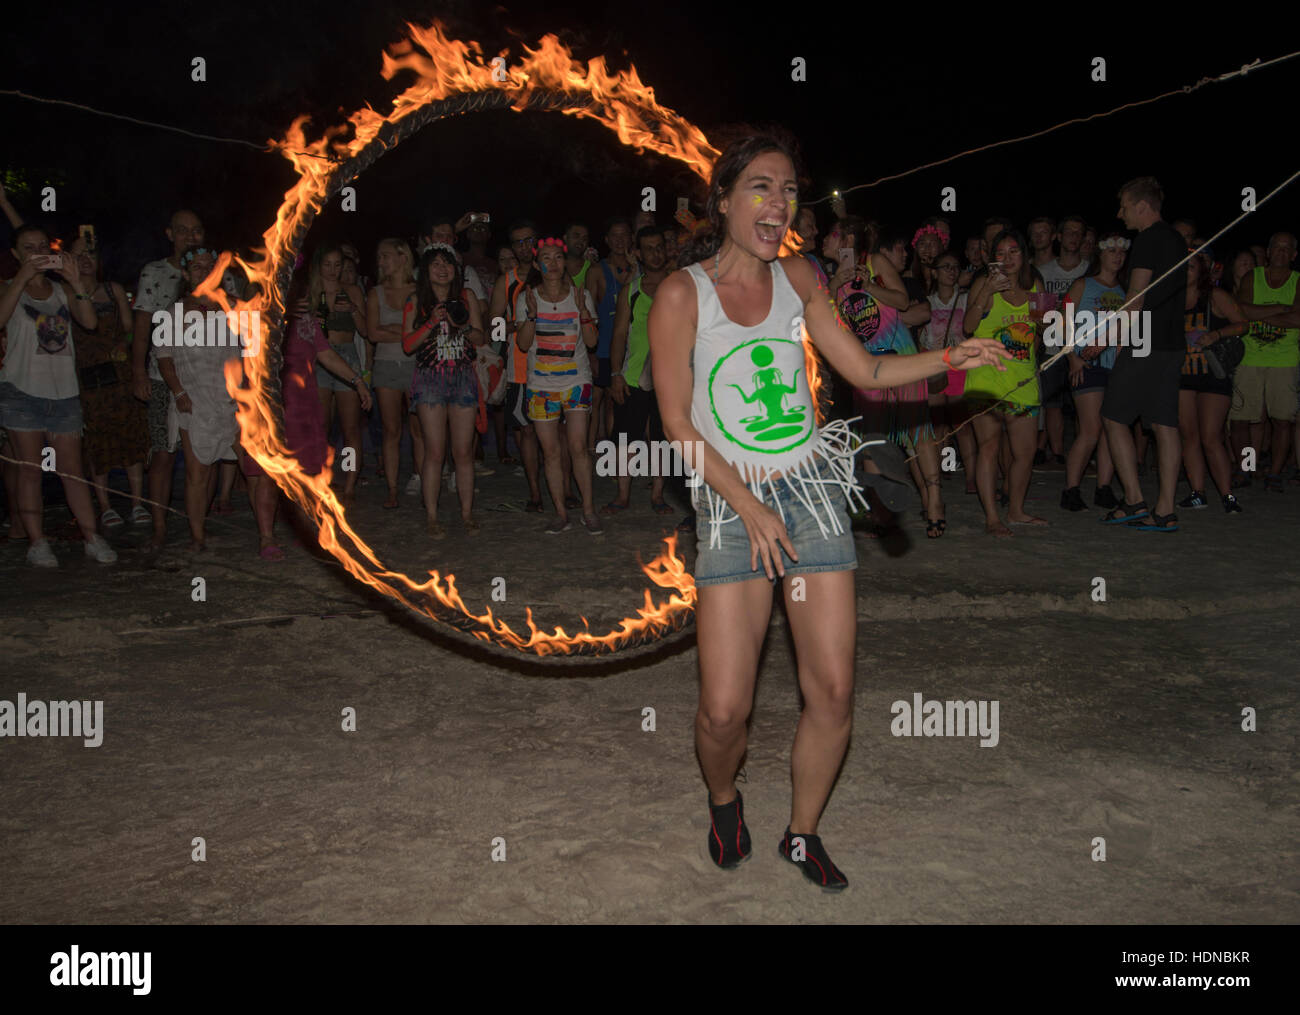 Female jumps through a burning hoop at a Full Moon party on Sunrise beach Haad Rin on the island of Kho Phag Nang - Stock Image